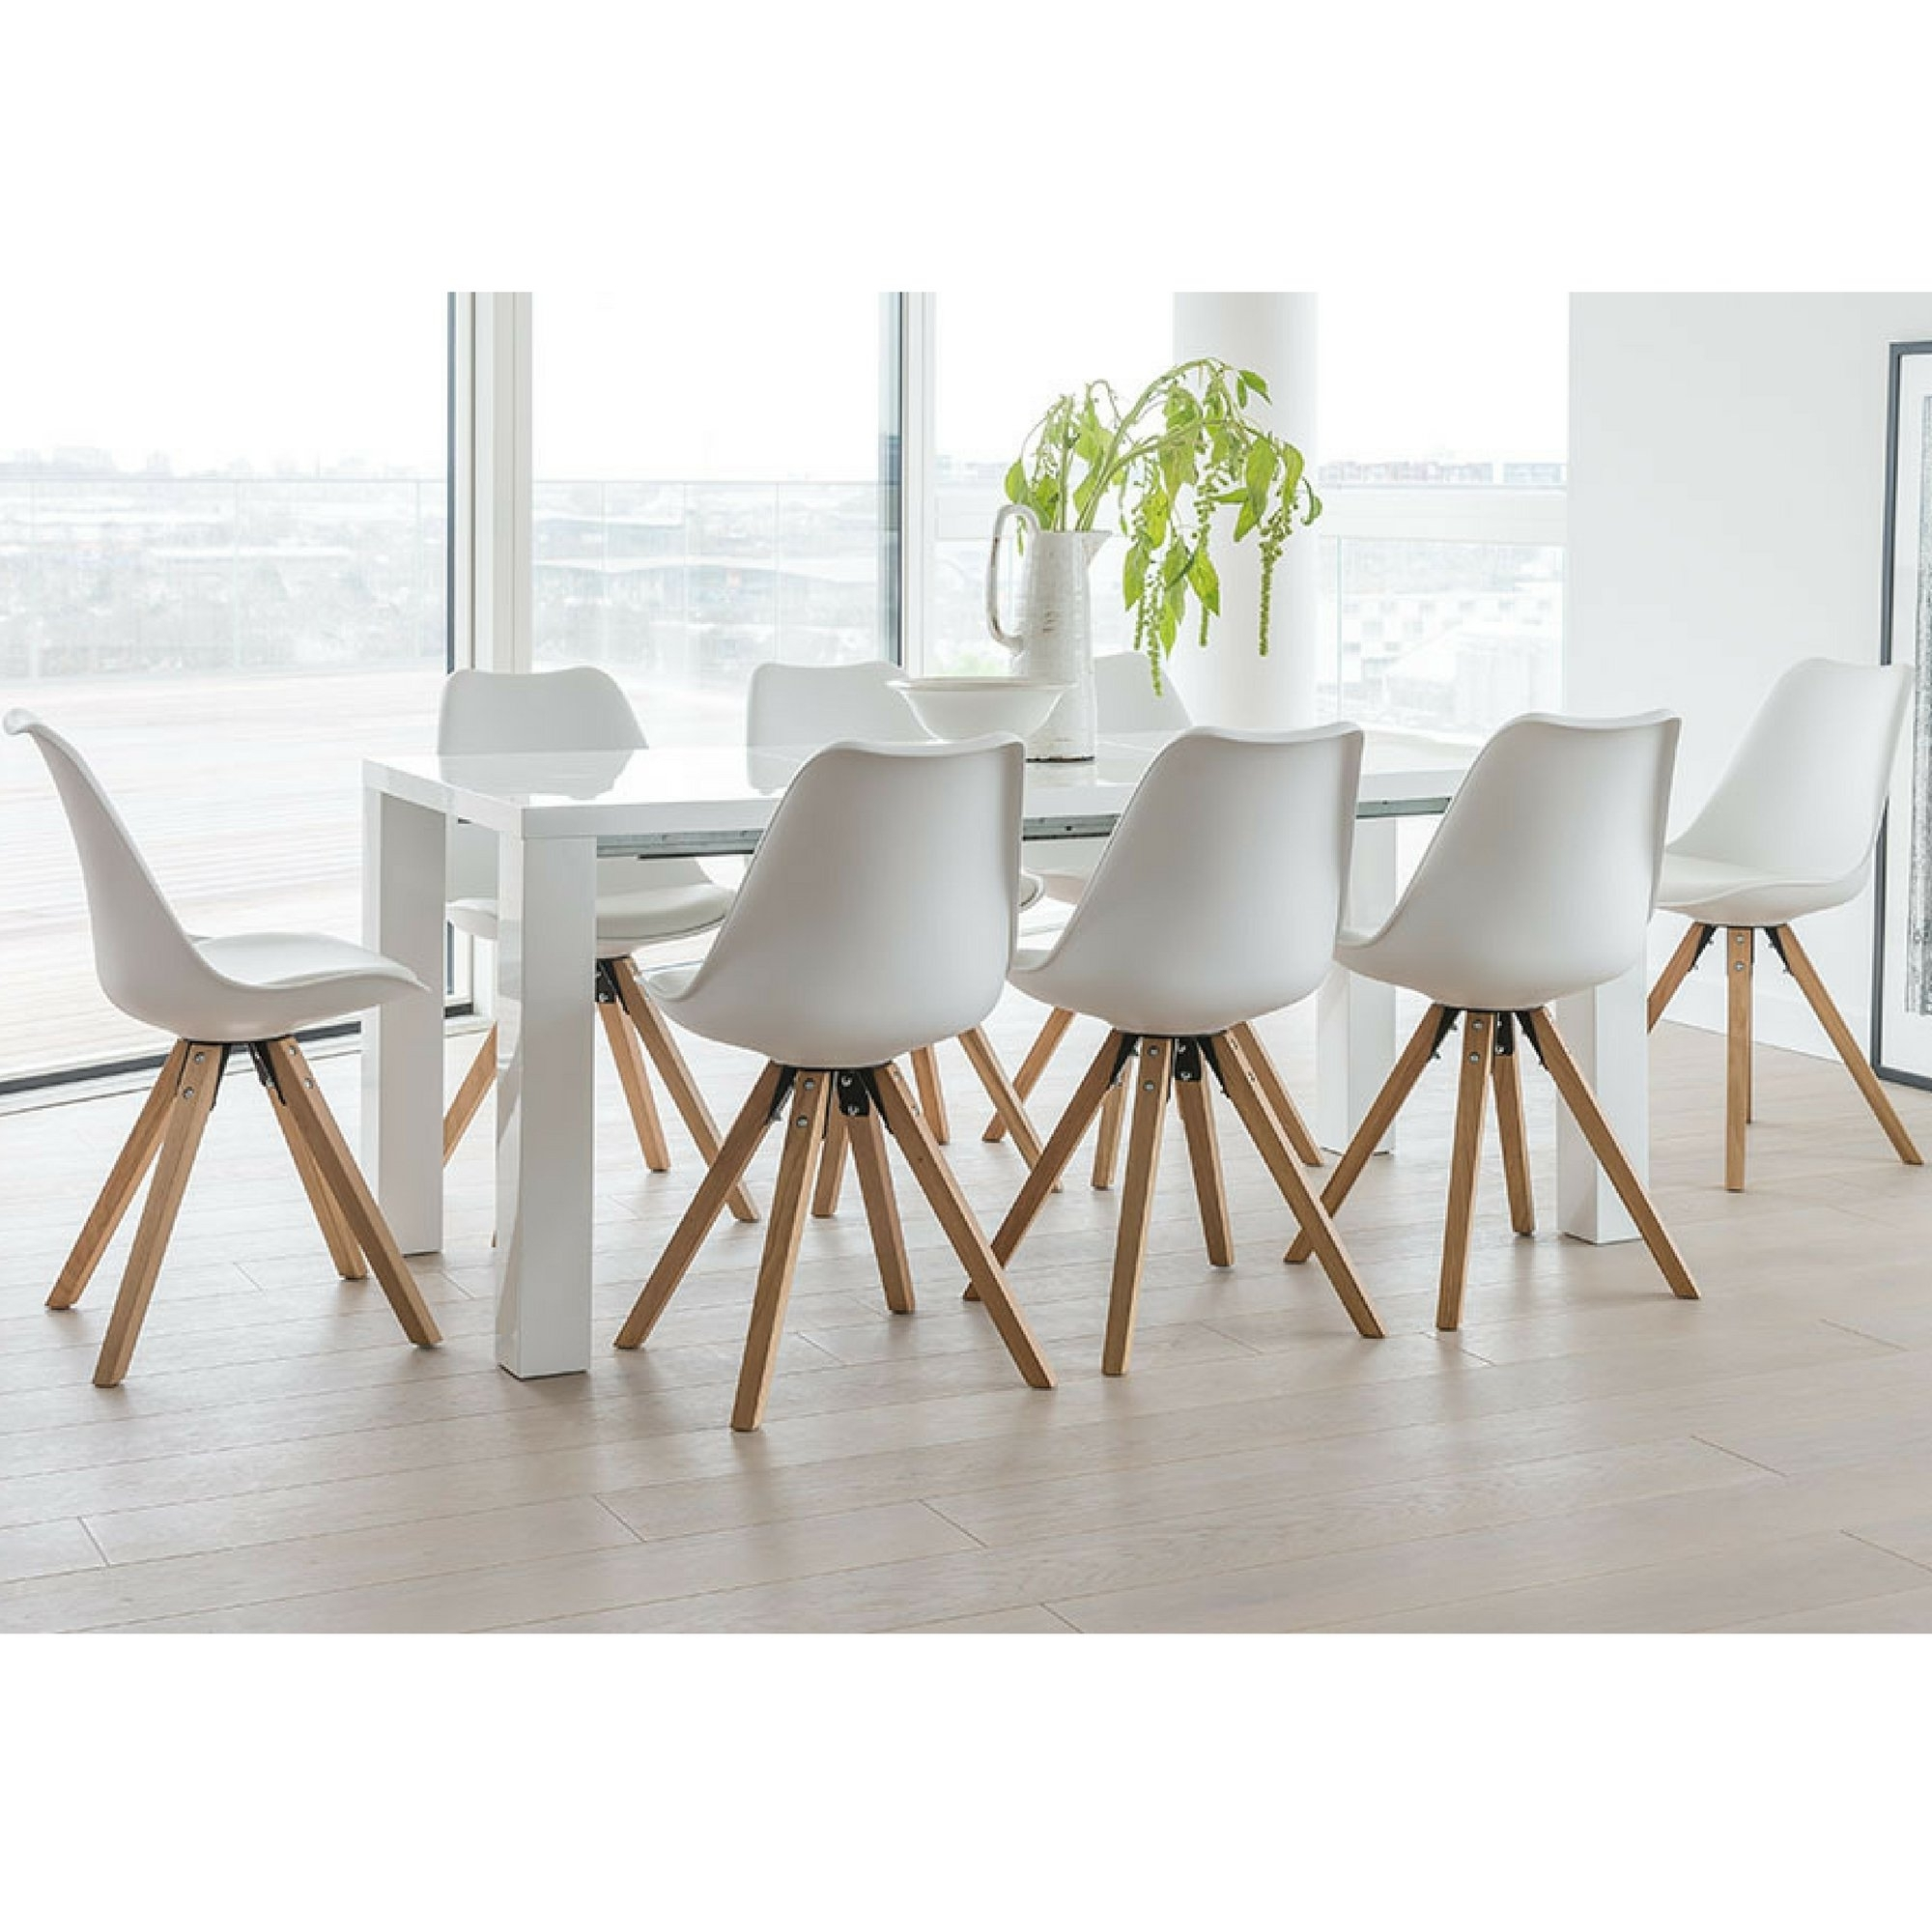 Most Popular Dining Tables And 8 Chairs With Regard To Norden Home Billie Extendable Dining Set With 8 Chairs (View 21 of 25)